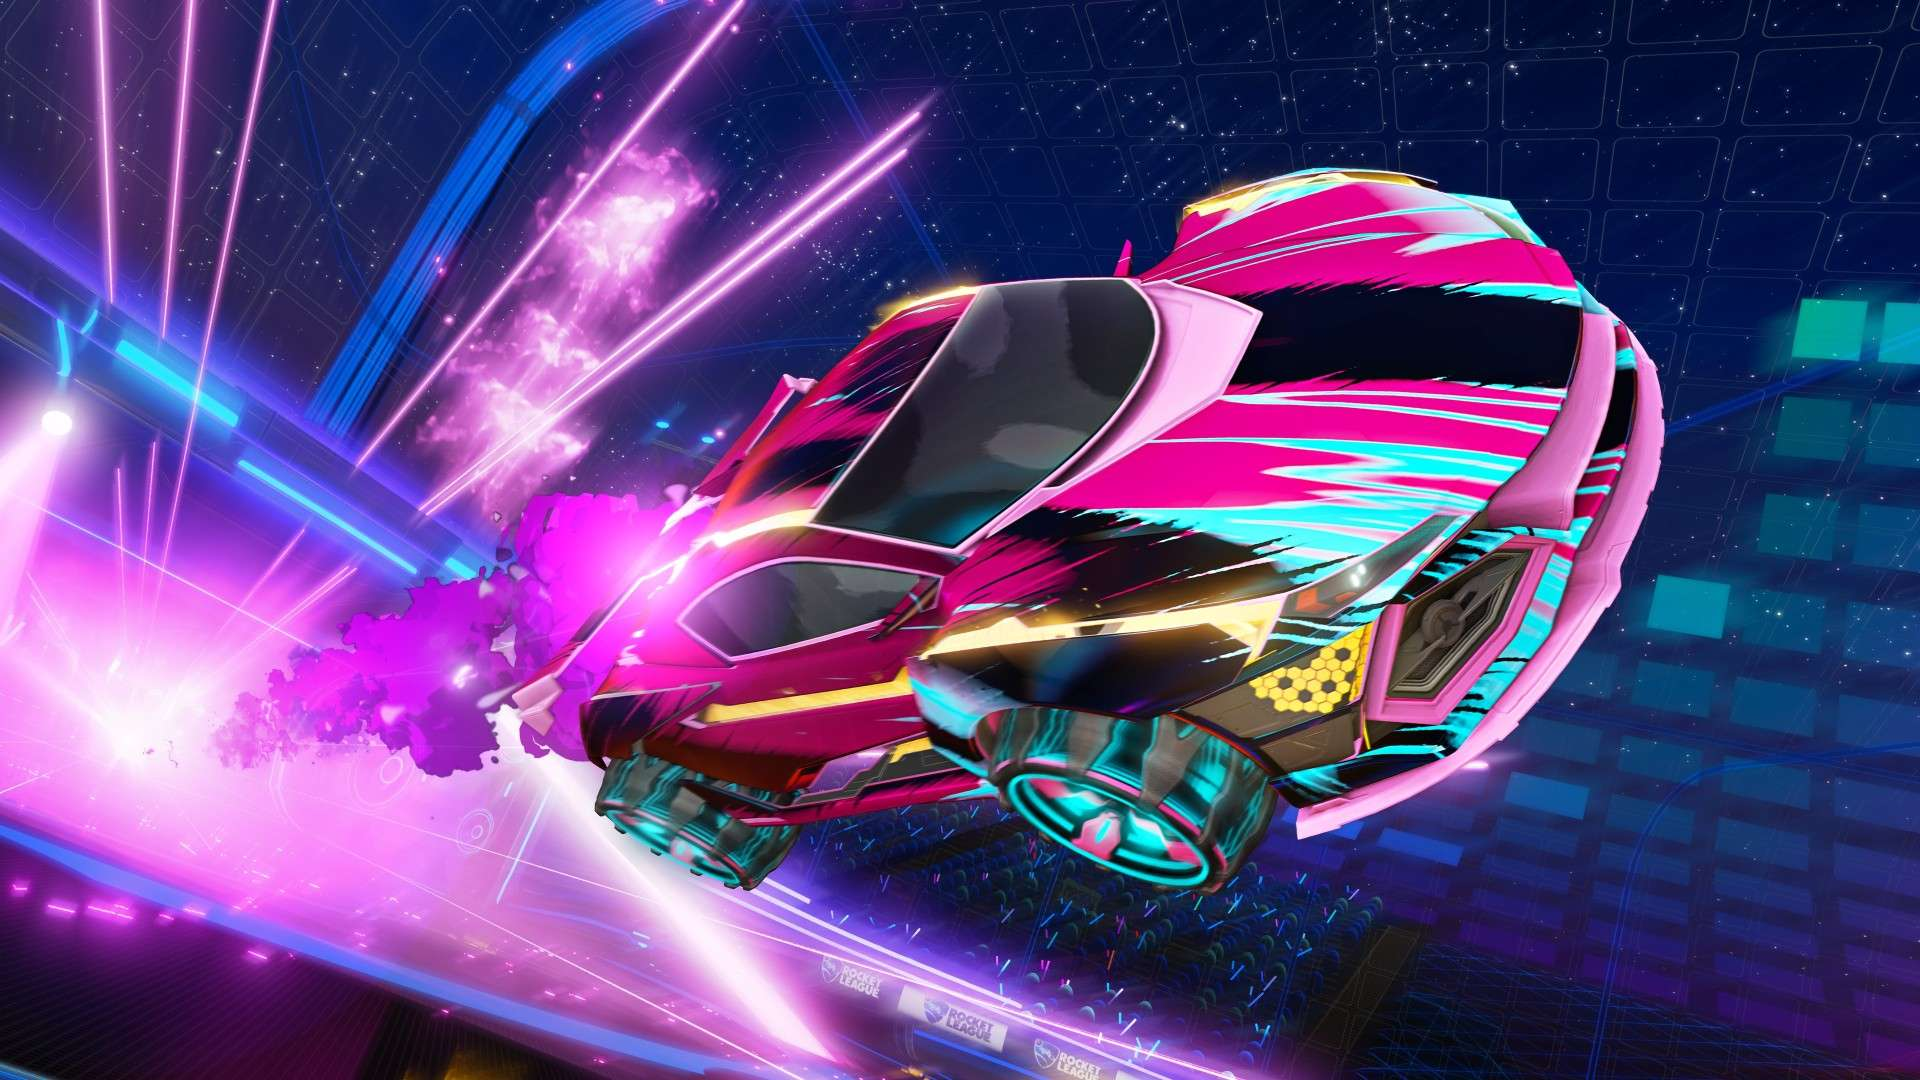 Rocket League Cars, which are best in 2021, top 5